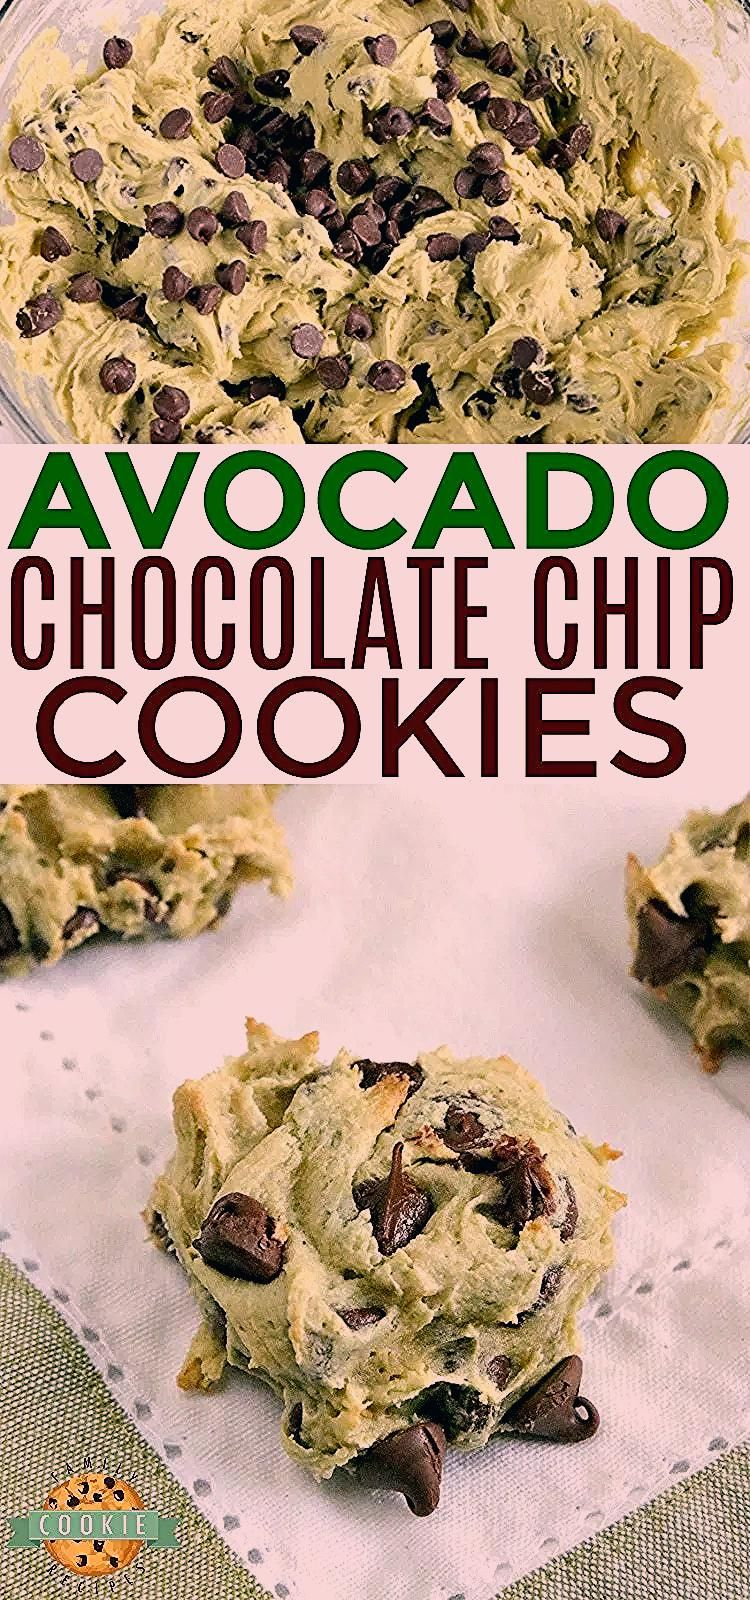 Avocado Chocolate Chip Cookies are soft, chewy and delicious! These chocolate chip cookies are made